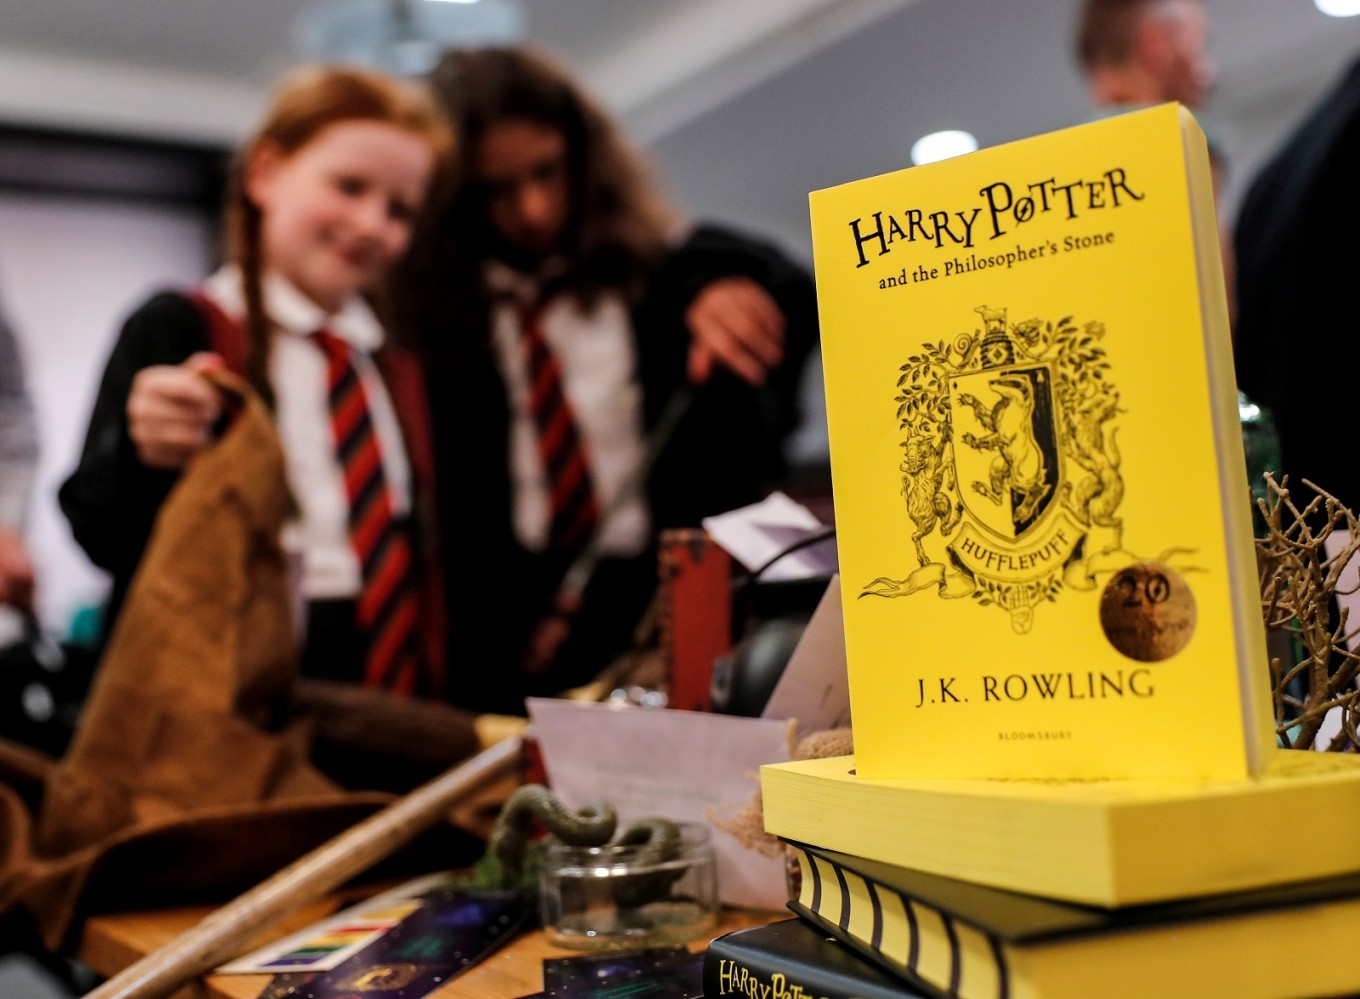 Harry Potter casts new spell over Bloomsbury book sales